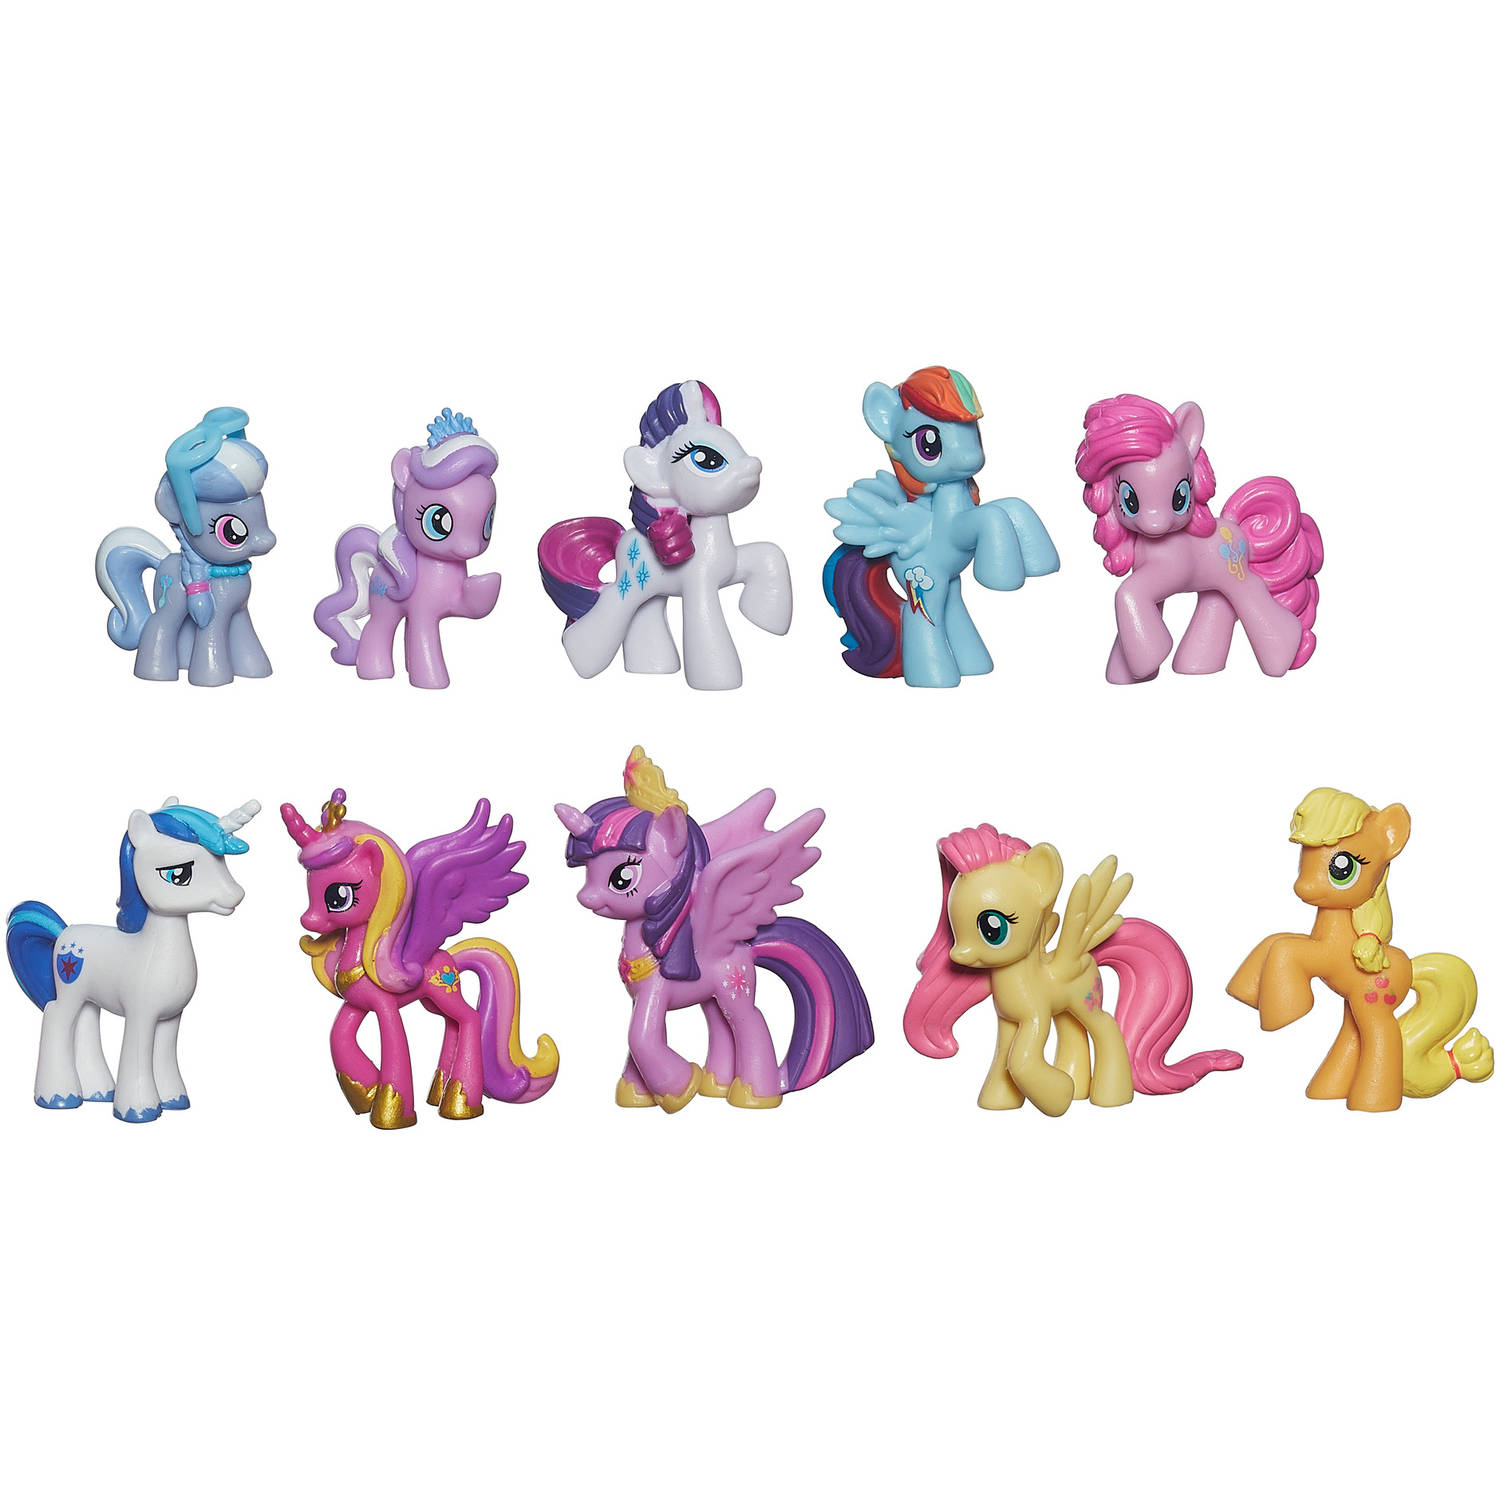 My Little Pony Friendship is Magic Princess Twilight Sparkle and Friends Mini Collection by Hasbro